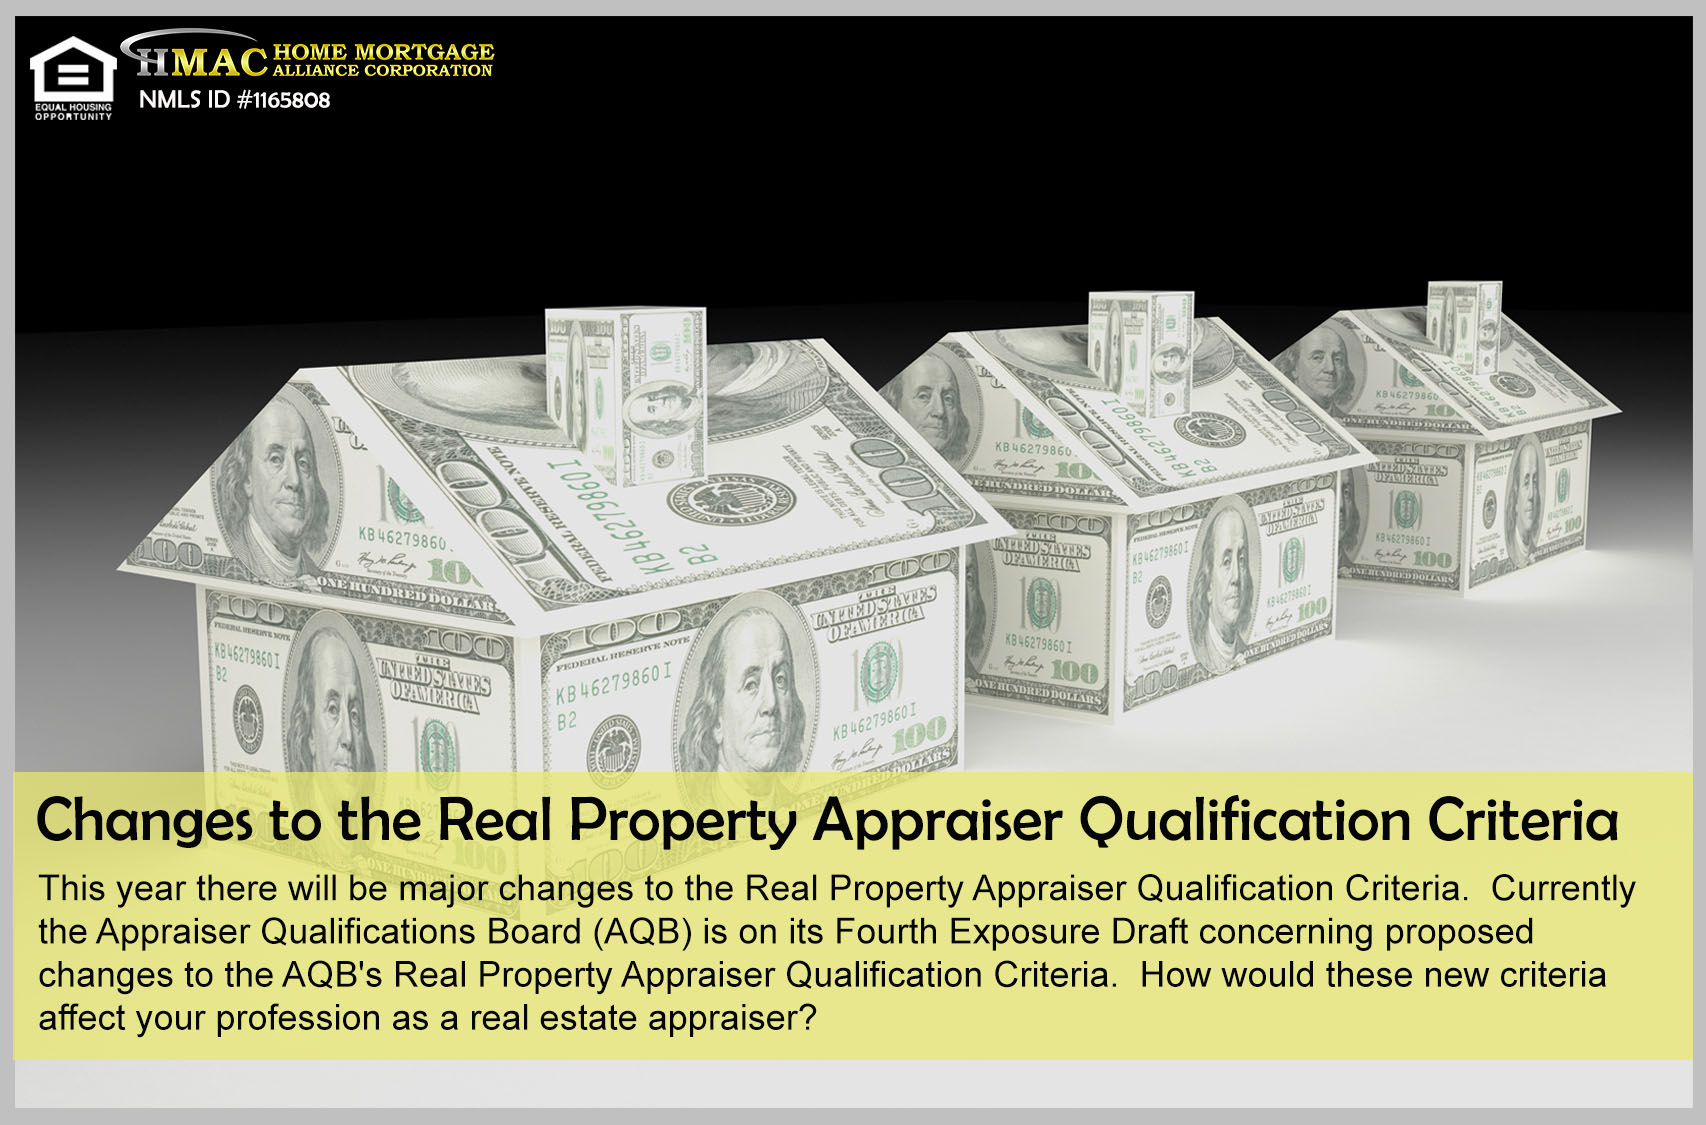 Changes to the Real Property Appraiser Qualification Criteria